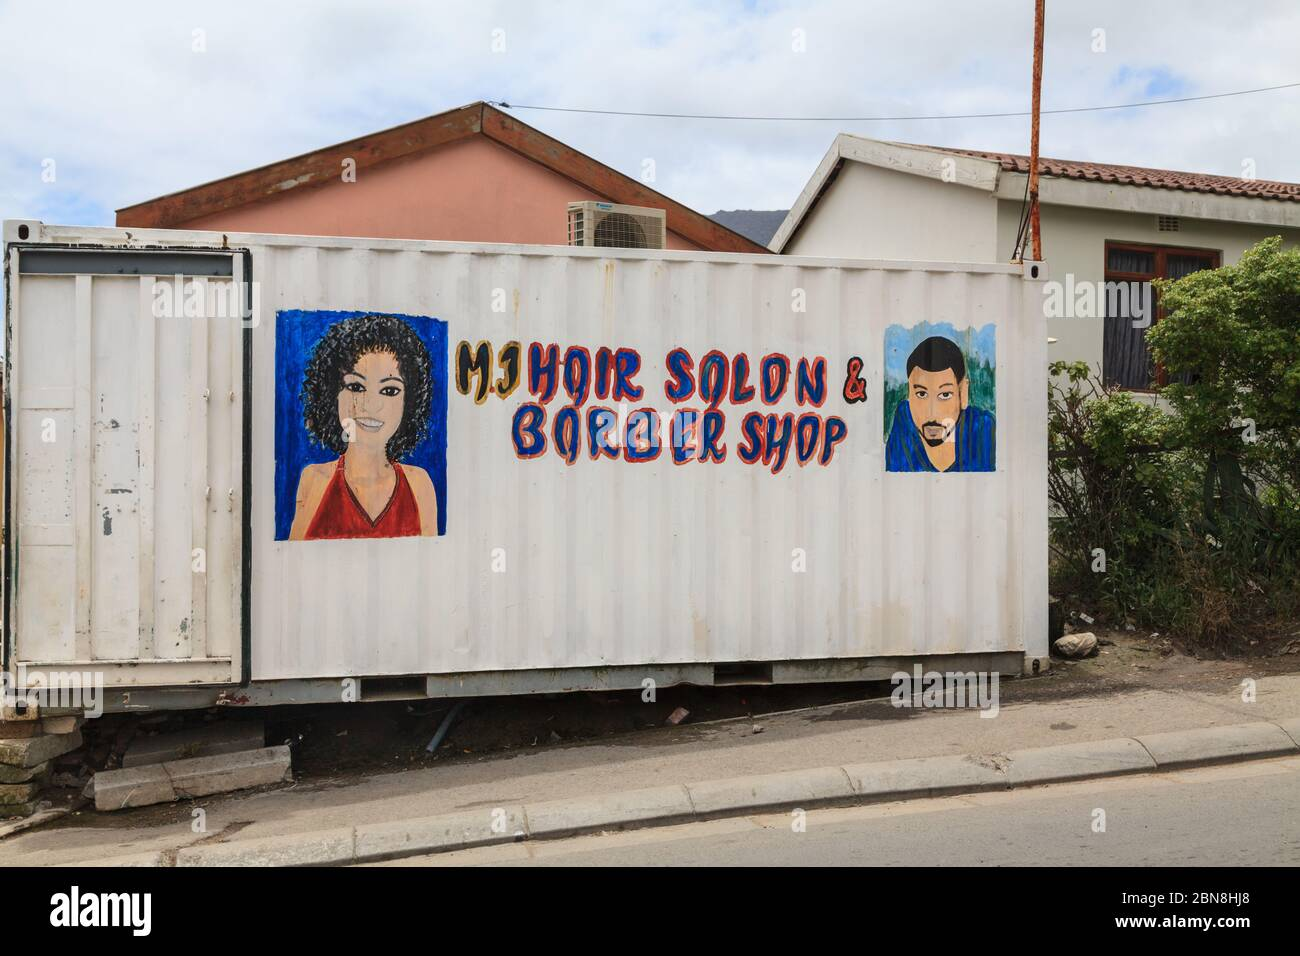 Hairdresser, improvised hair salon and barber shop in container, exterior, Imizamo Yethu Township (Mandela Park) settlement, Cape Town, South Africa Stock Photo